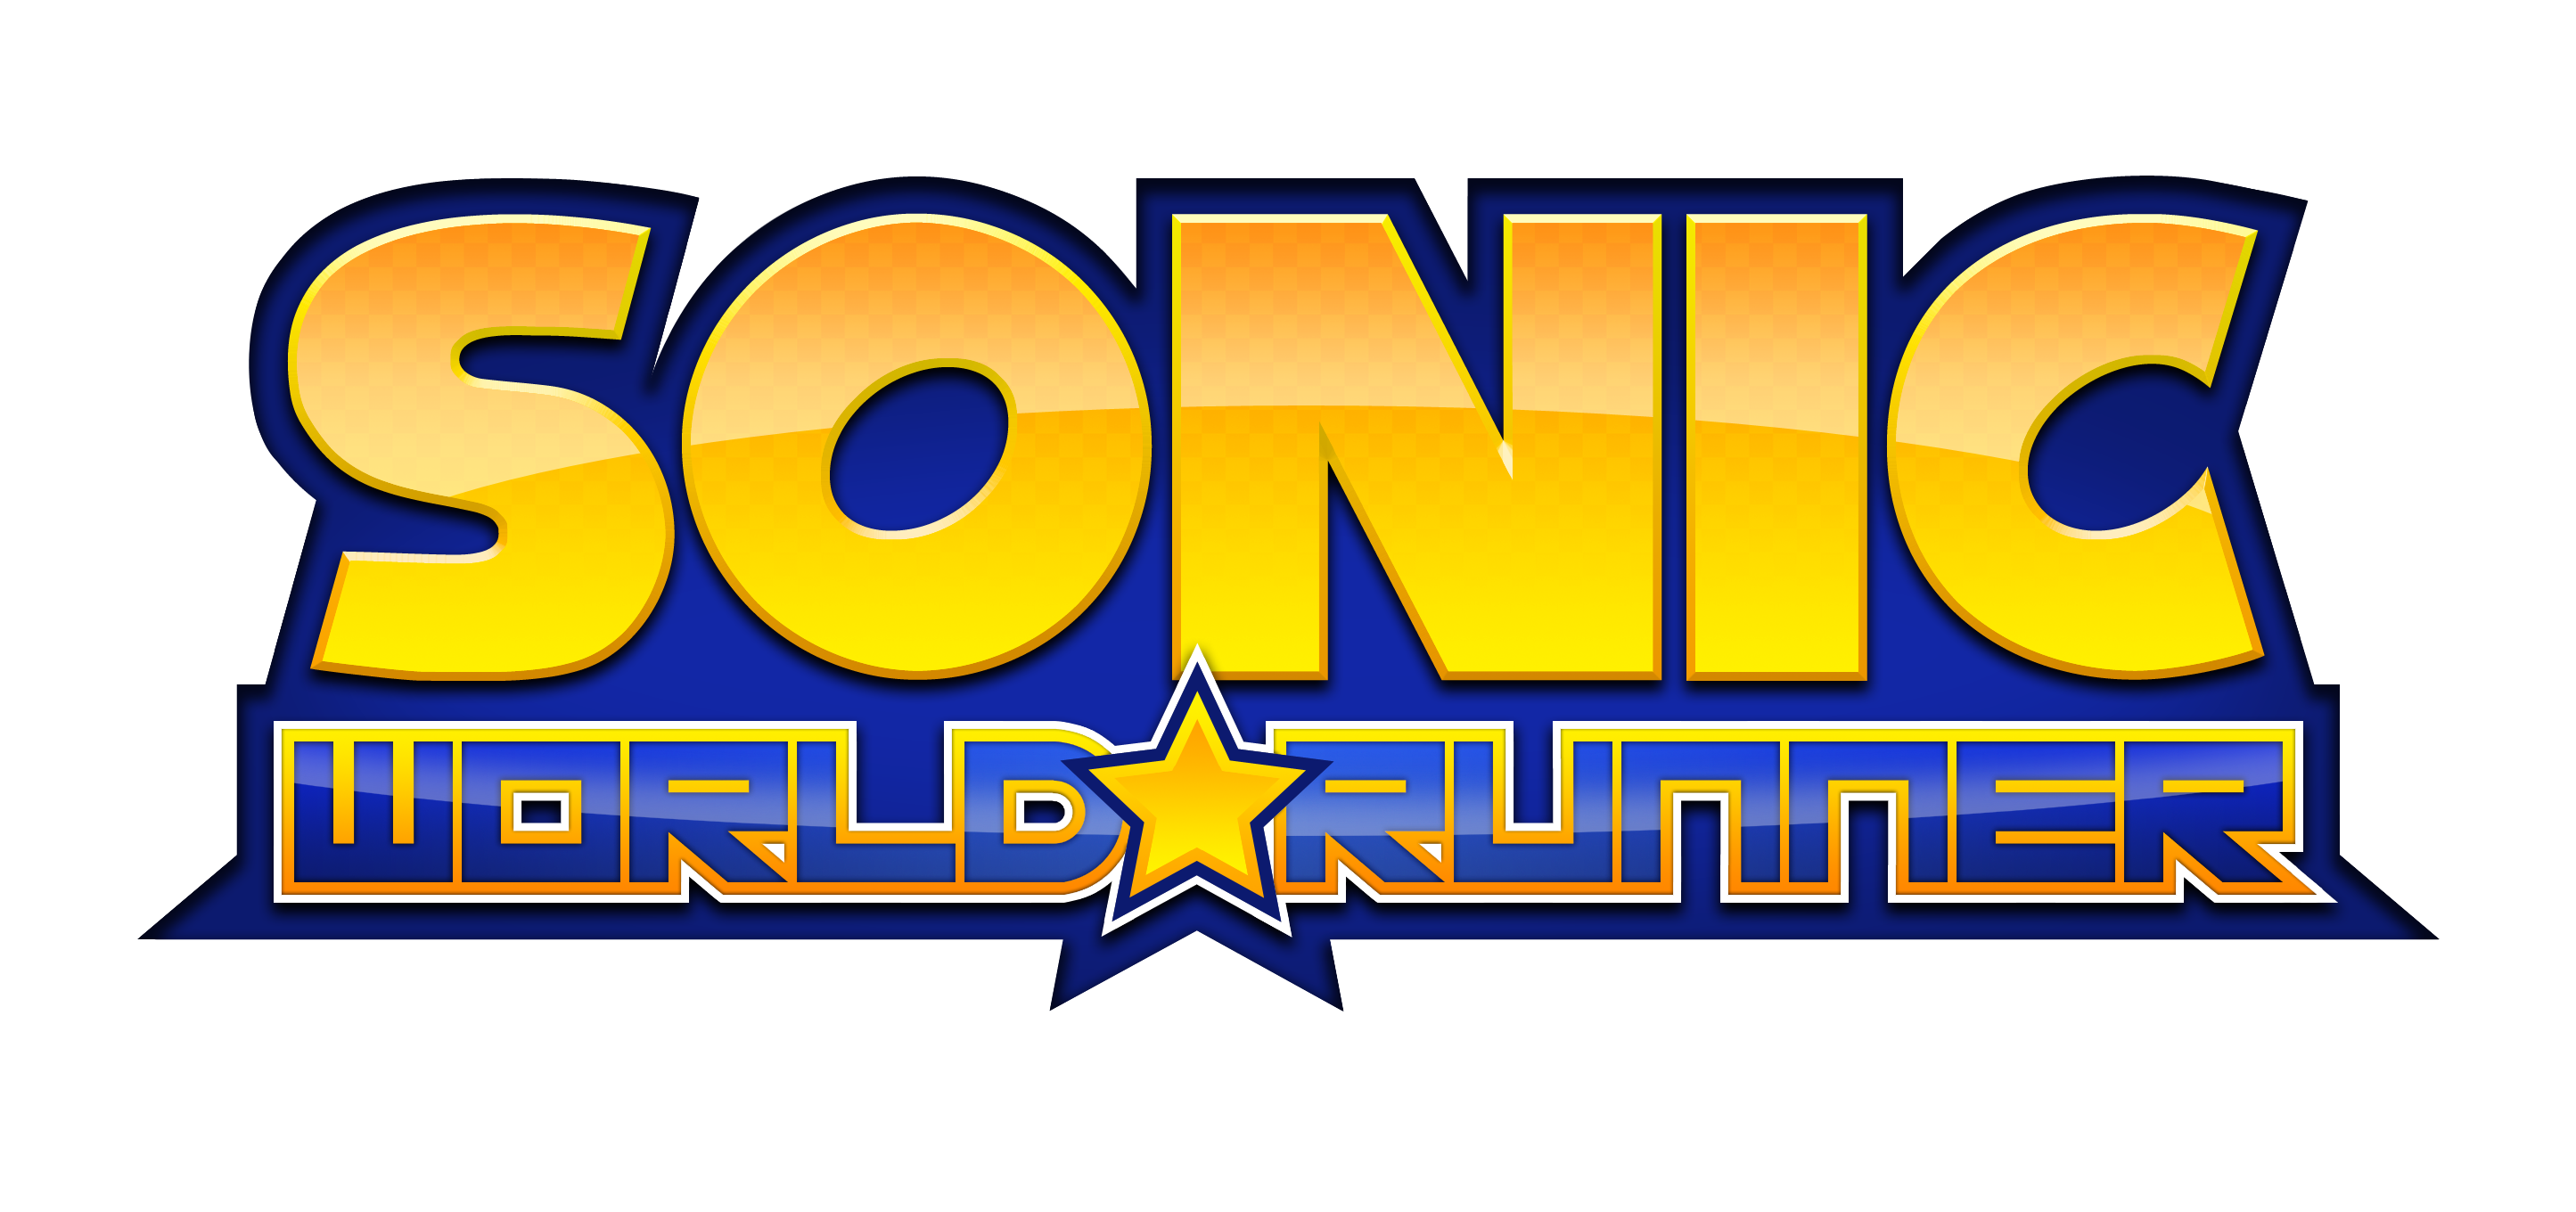 Sonic World Runner is a Sonic the Hedgehog fangame made using the